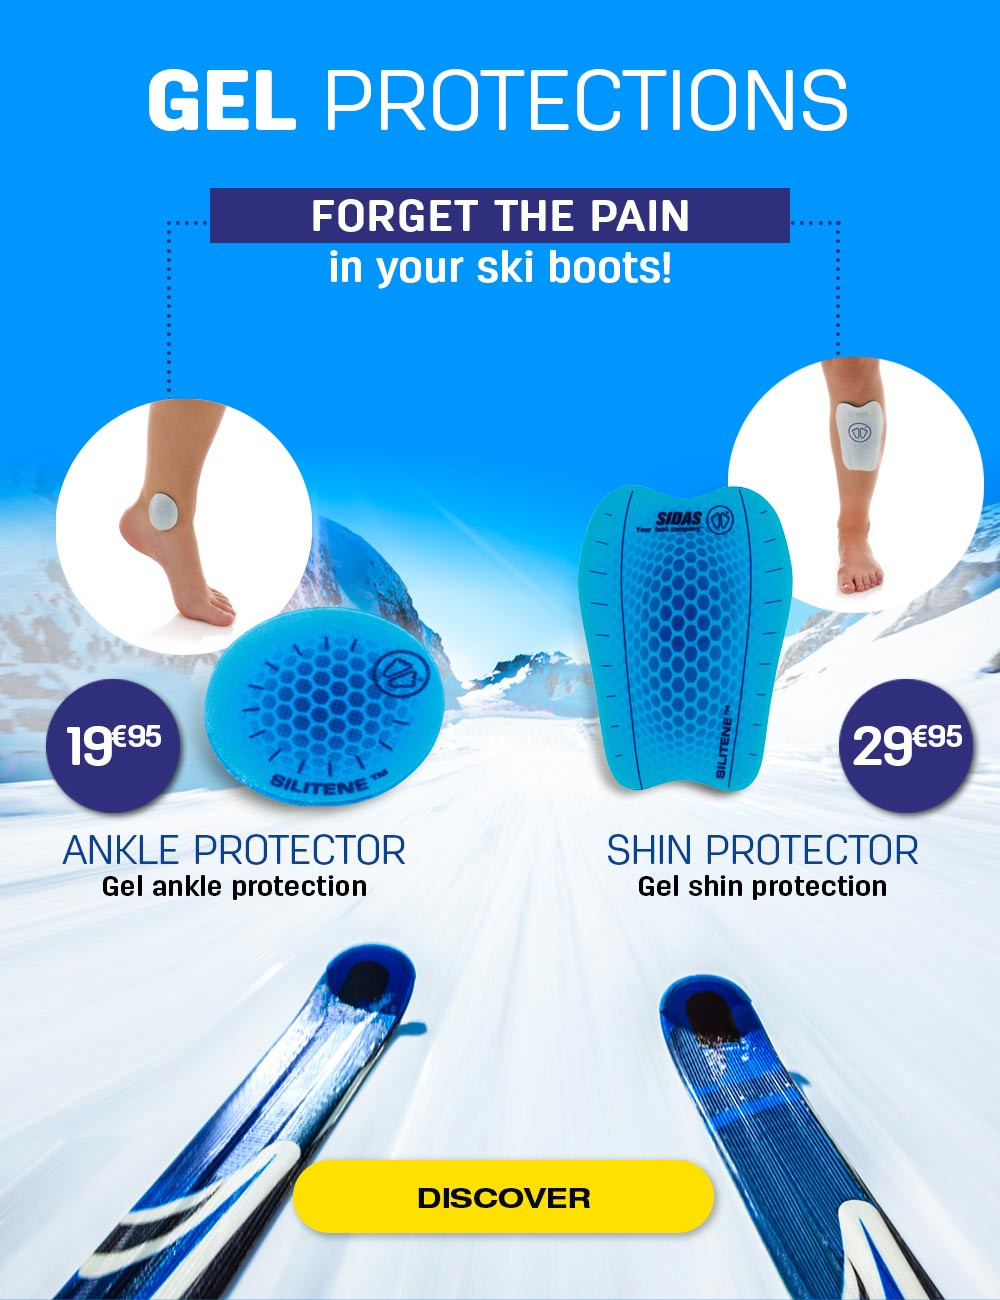 Forget your pains into your ski boots thanks to our gel protections